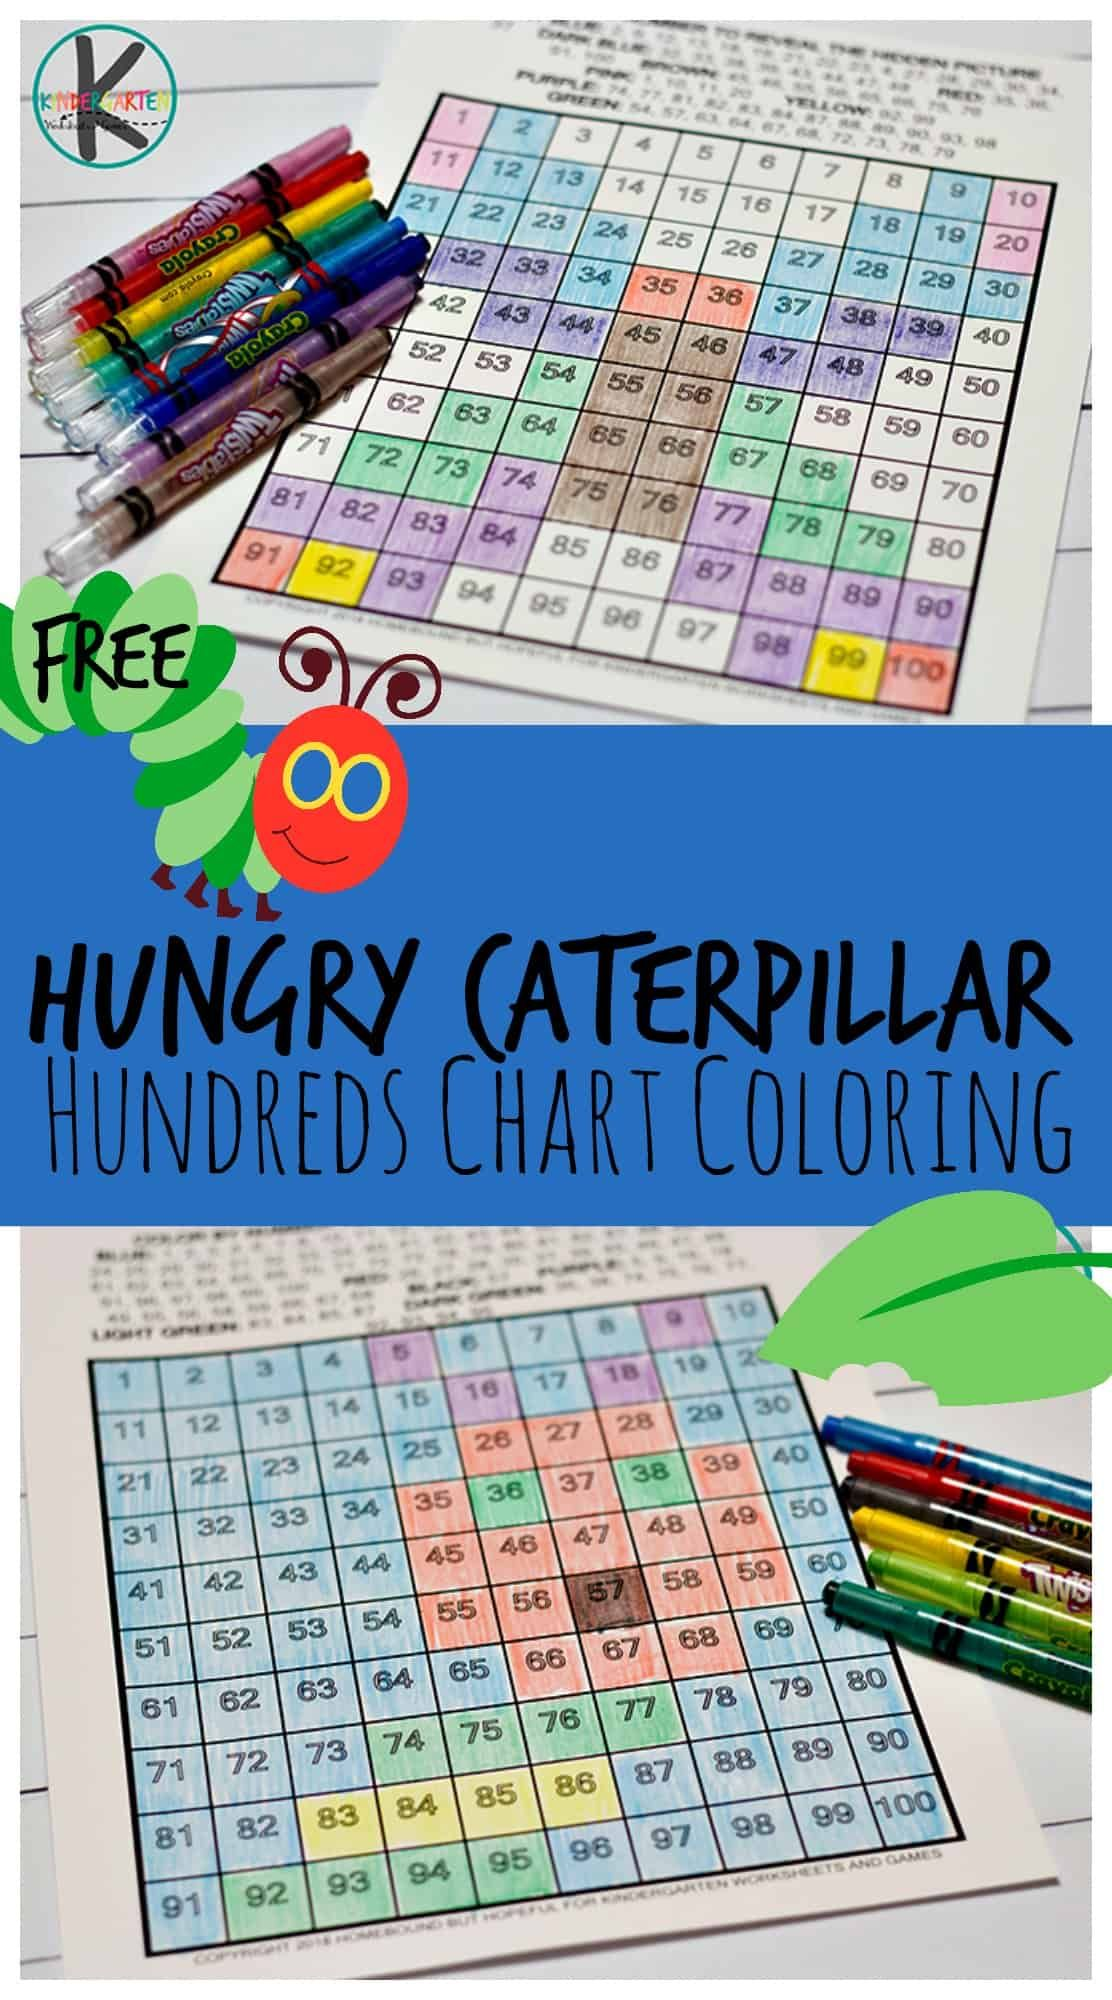 Very Hungry Caterpillar Hundreds Chart Coloring With